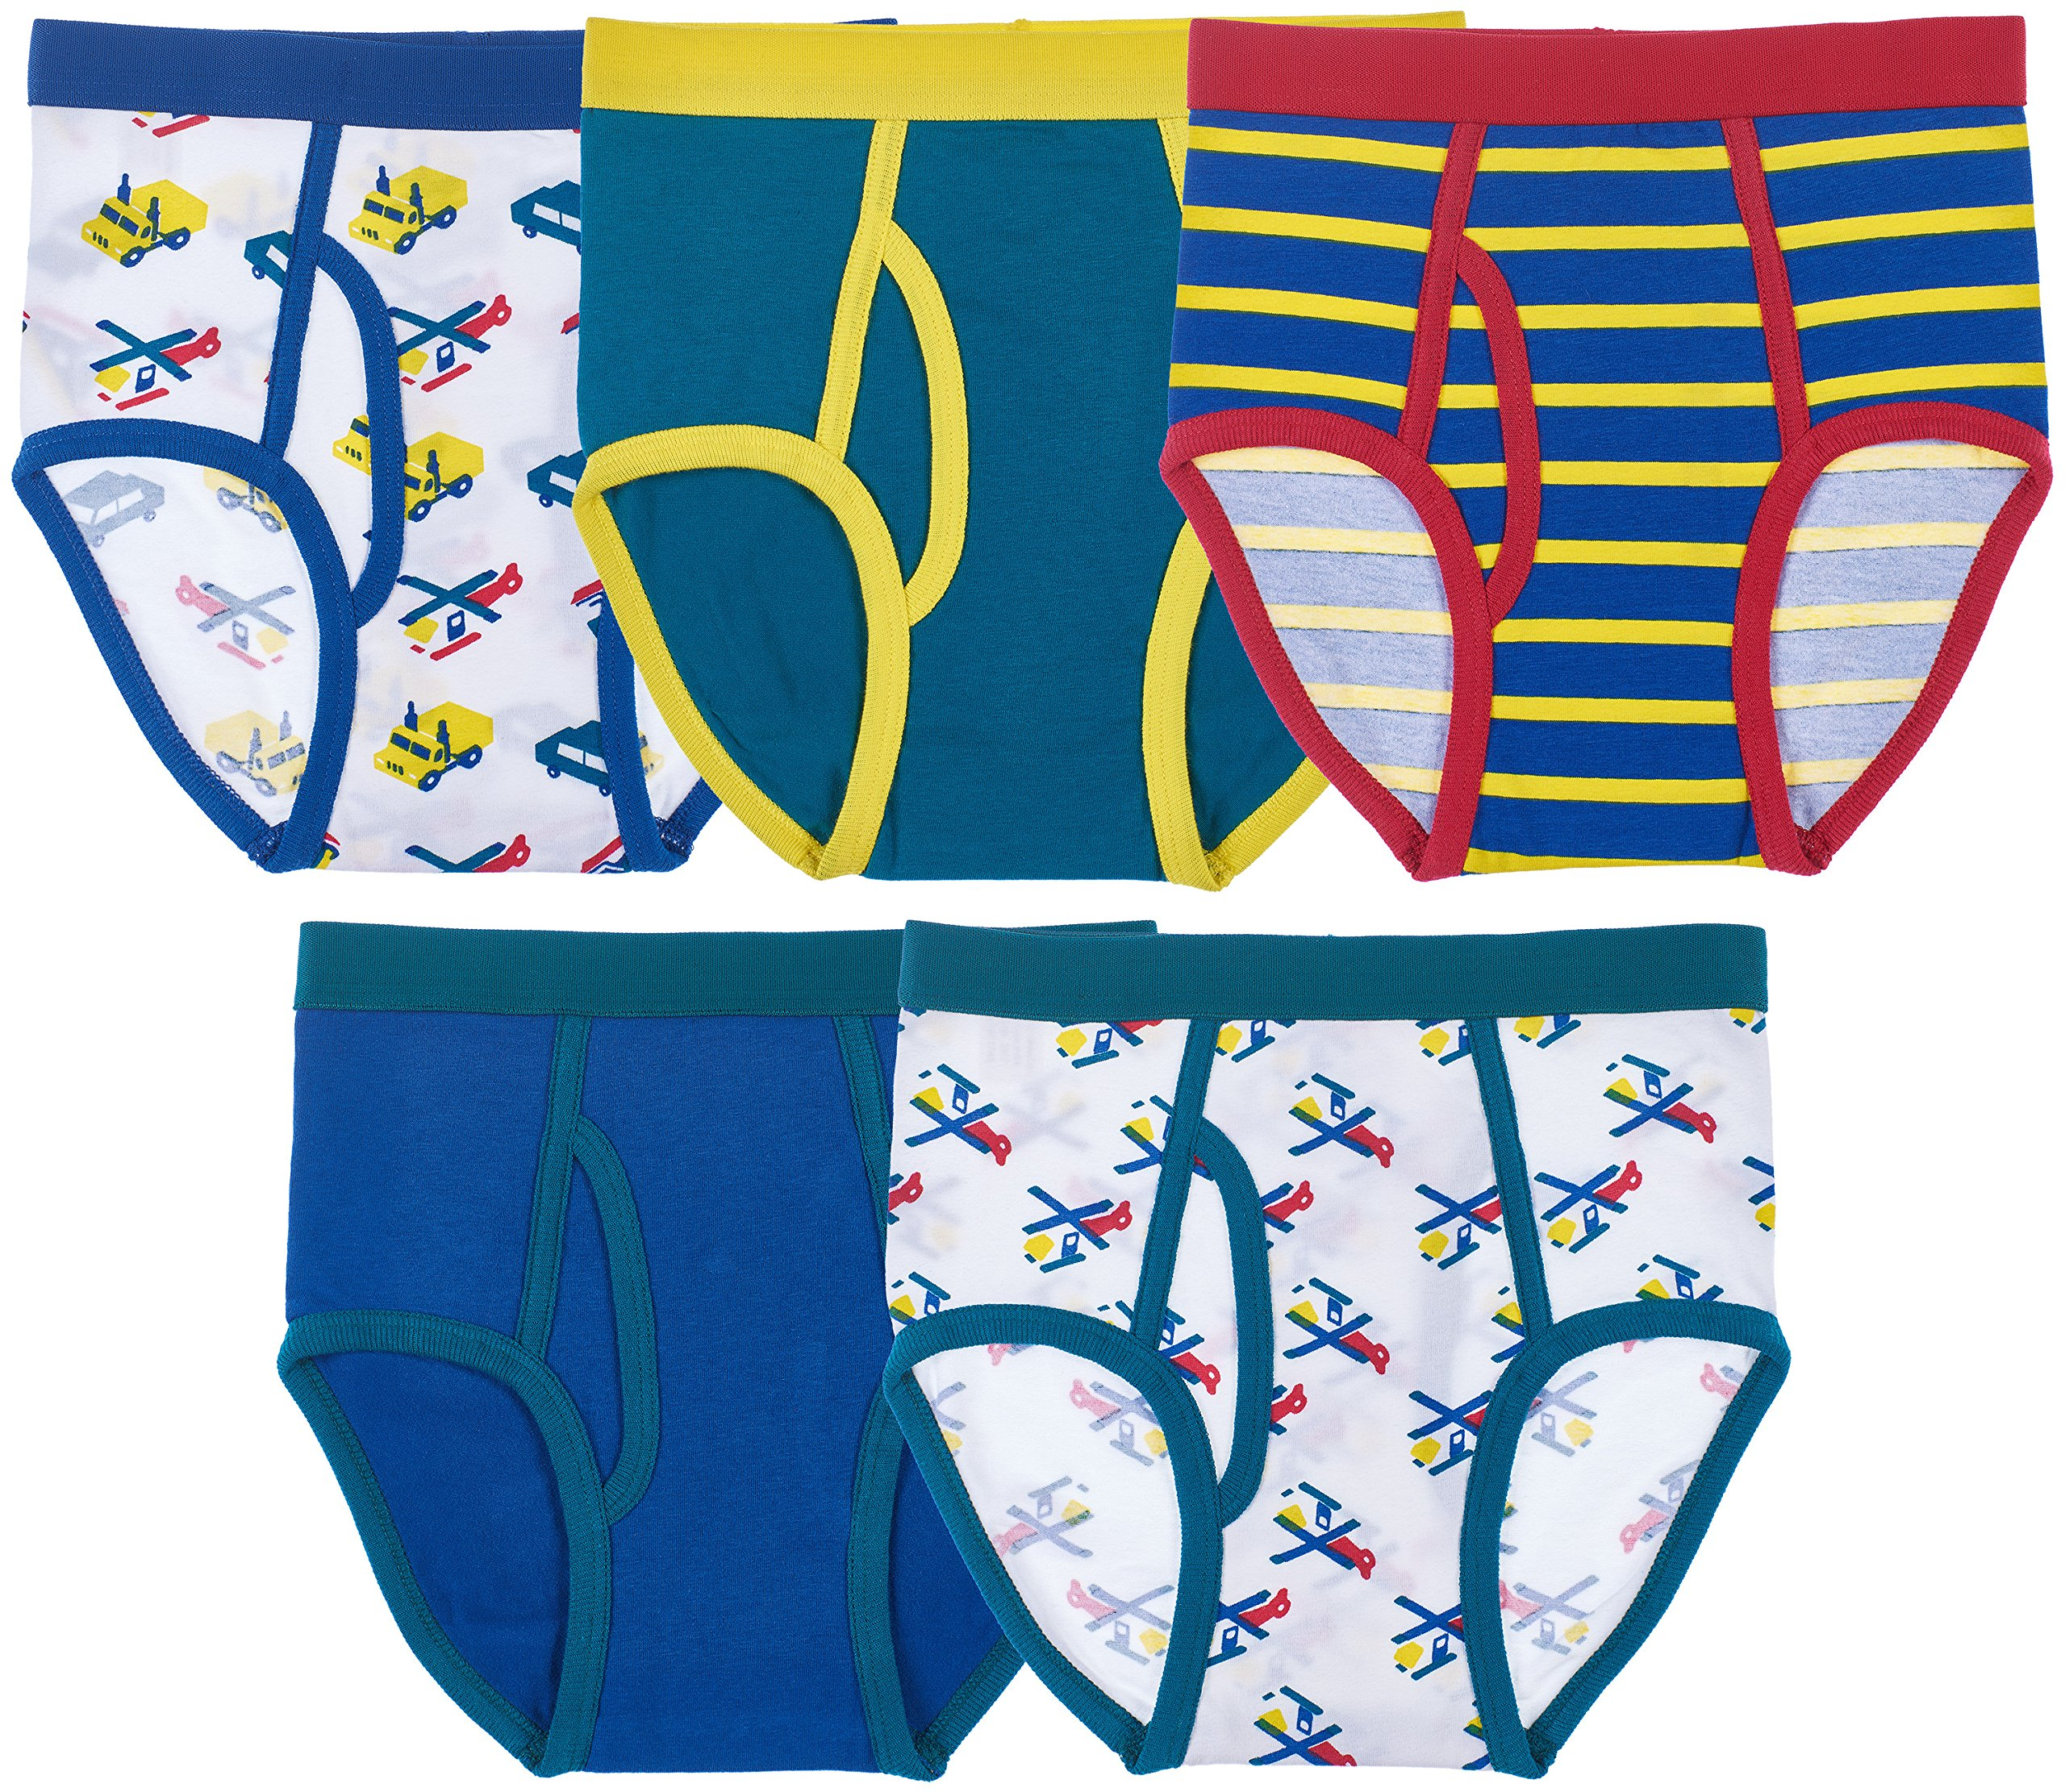 Trimfit Boys Cotton/Spandex Tagless Colorful Briefs 5-Pack, Transportation, M (6-8)